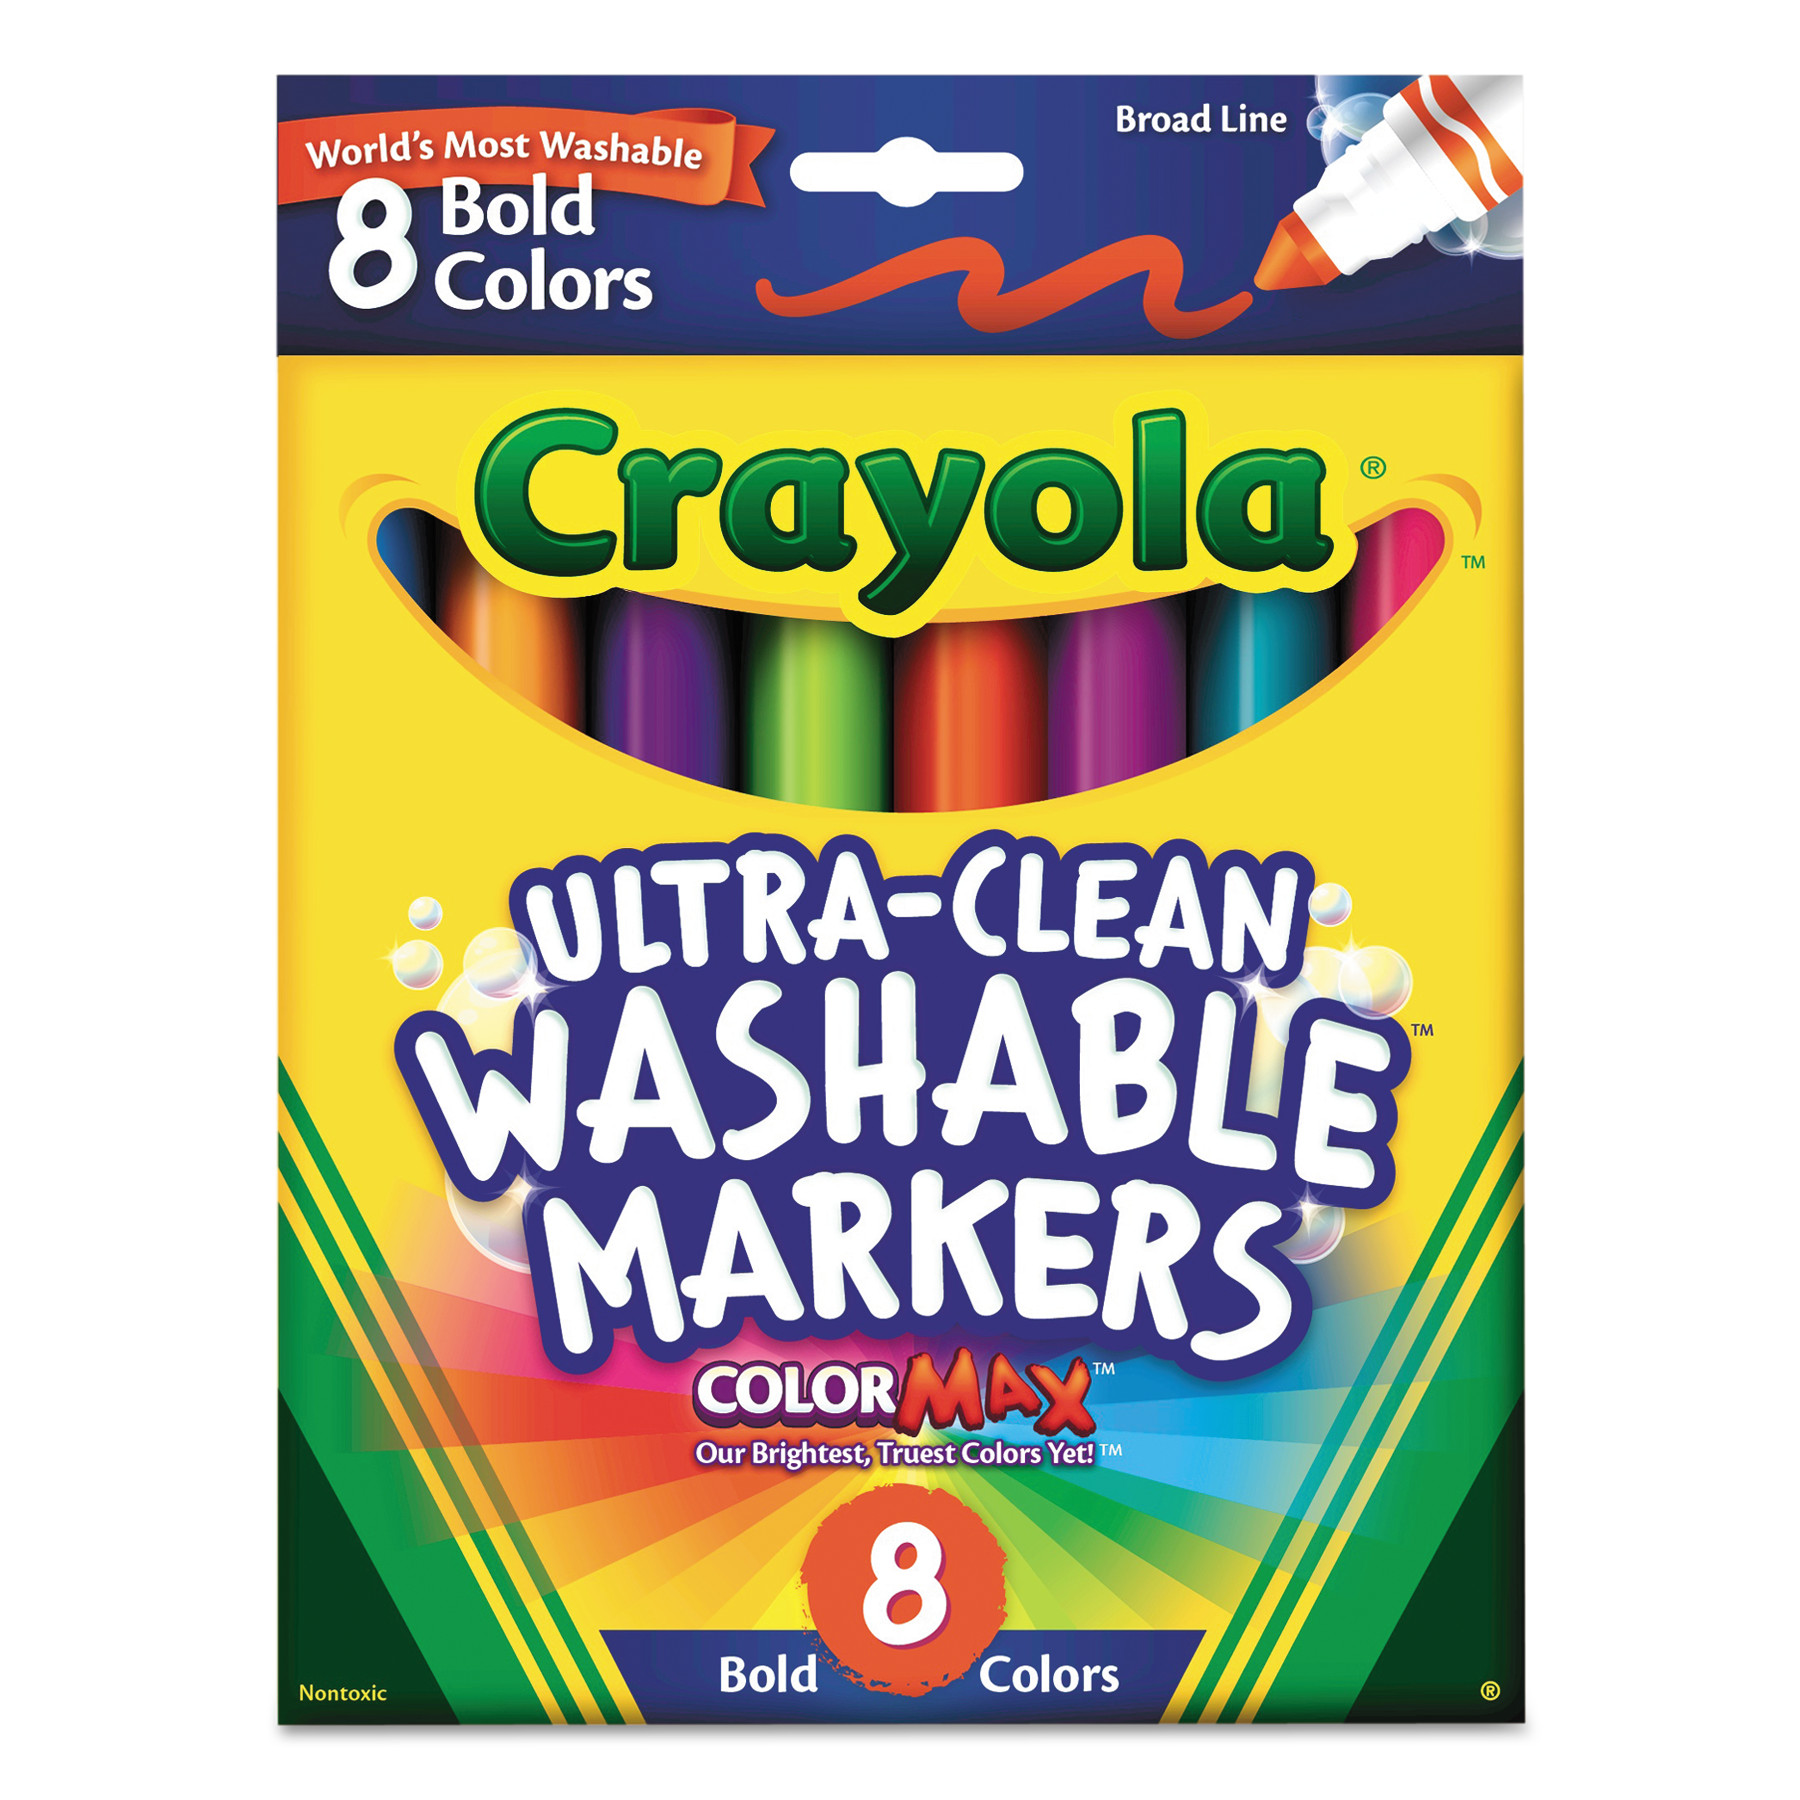 Crayola Washable Markers, Broad Point, Bold Colors, 8 Set by BINNEY & SMITH / CRAYOLA